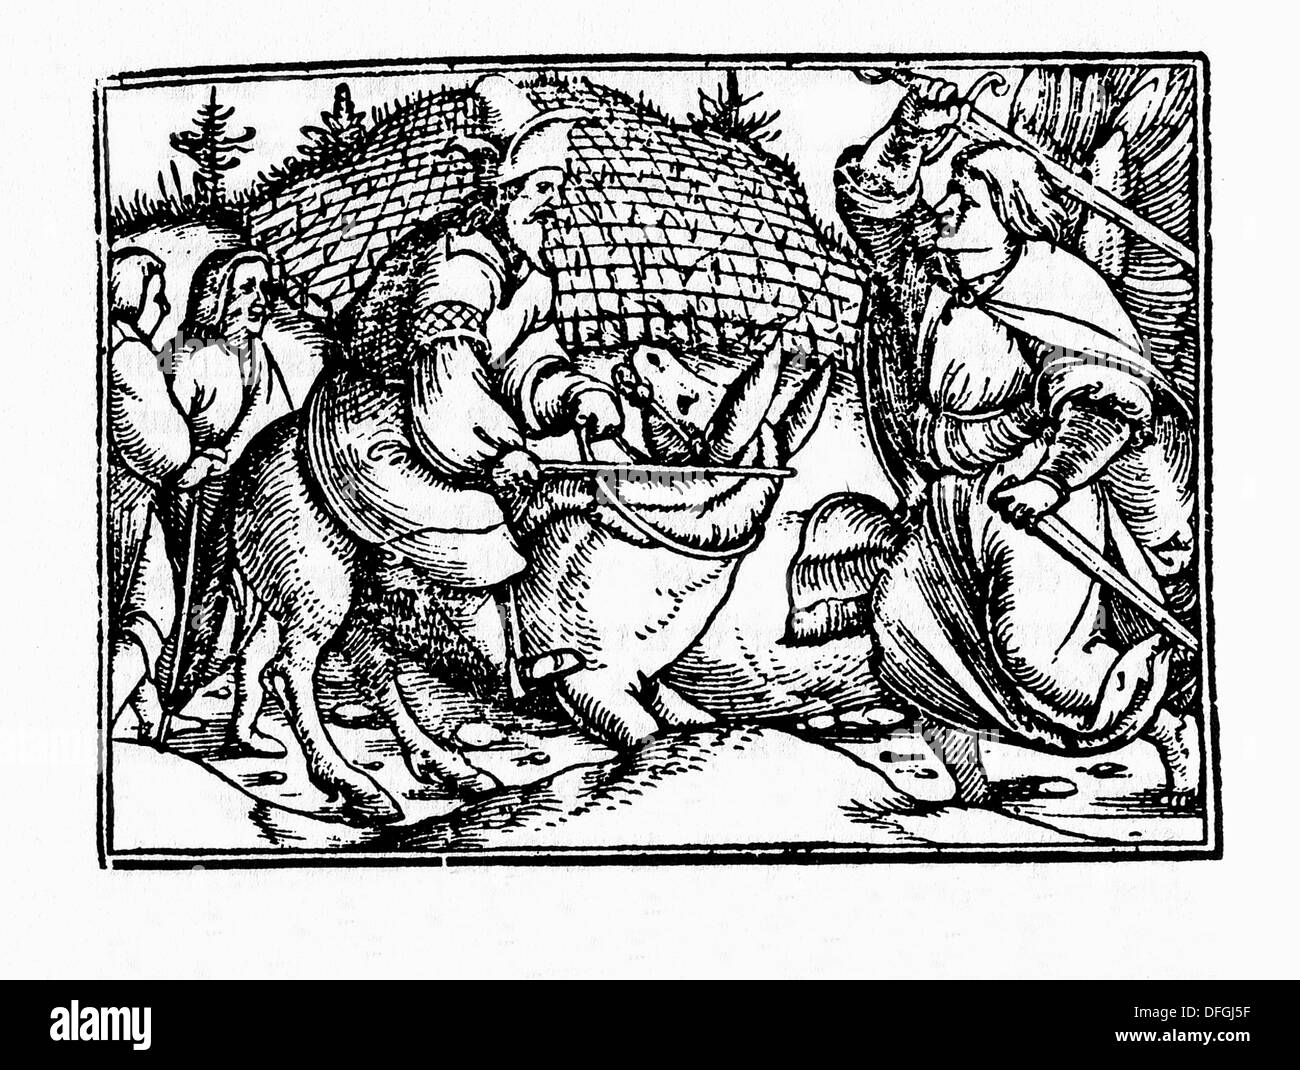 Balaam Stock Photos & Balaam Stock Images - Alamy